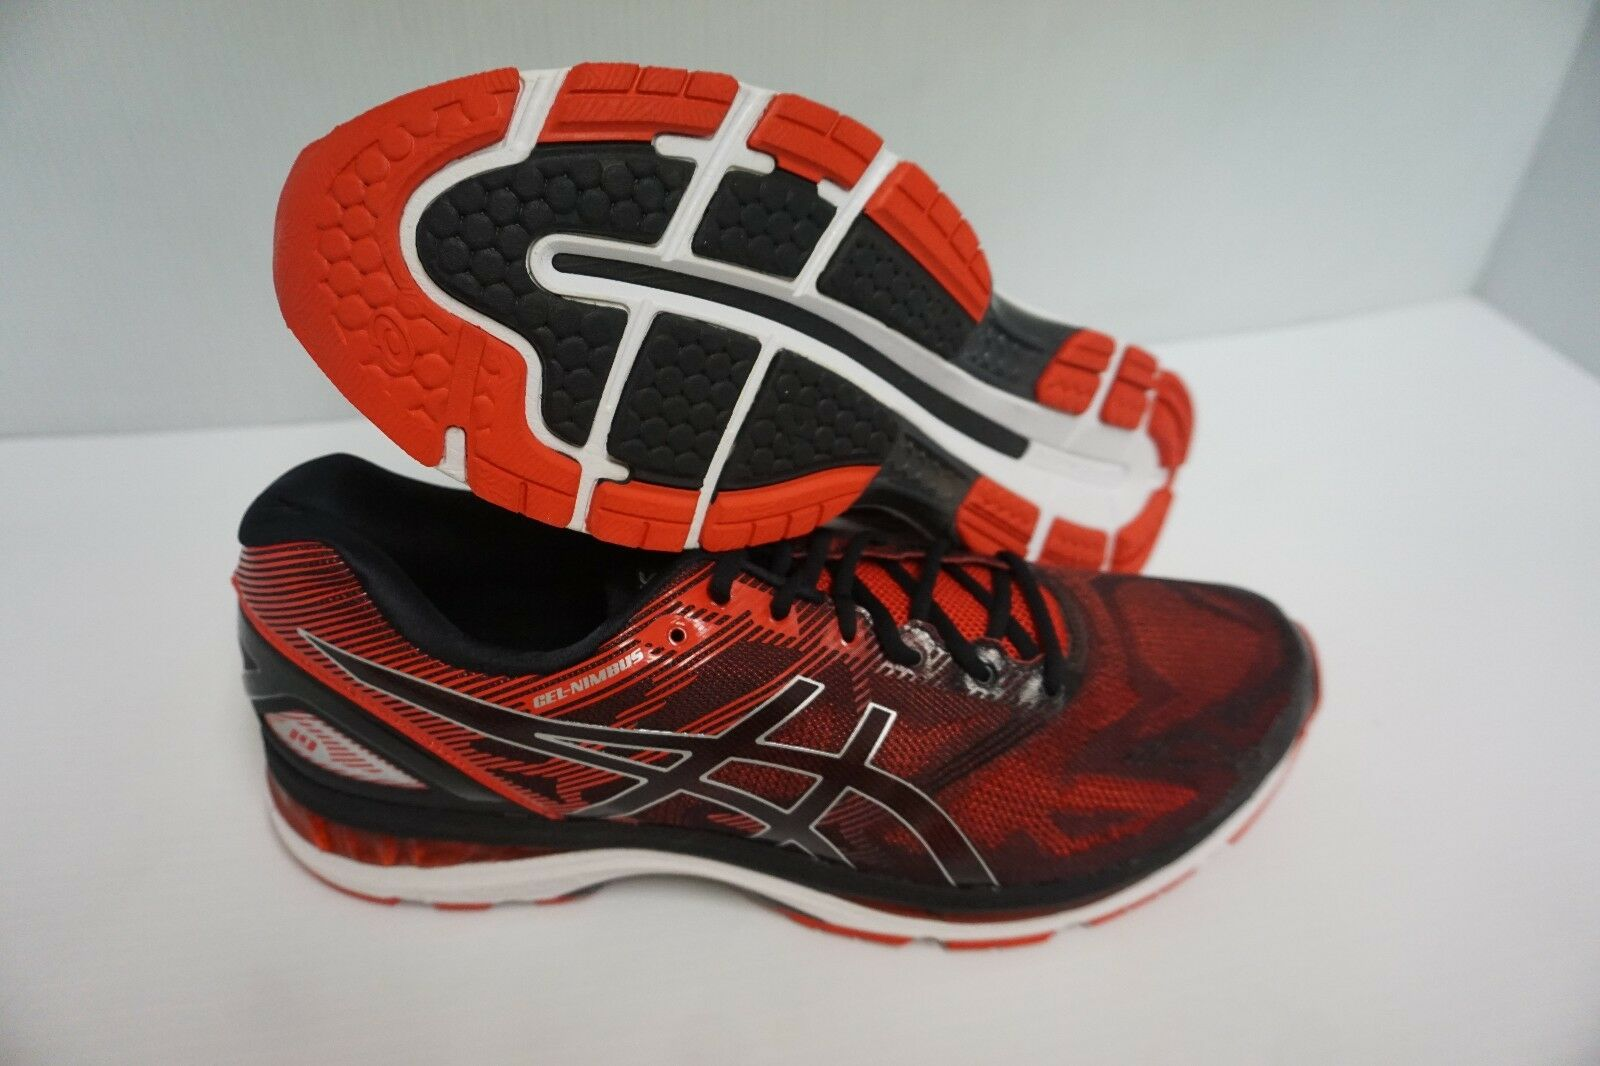 Asics men's gel nimbus 19 running shoes black vermilion silver size 11.5 us